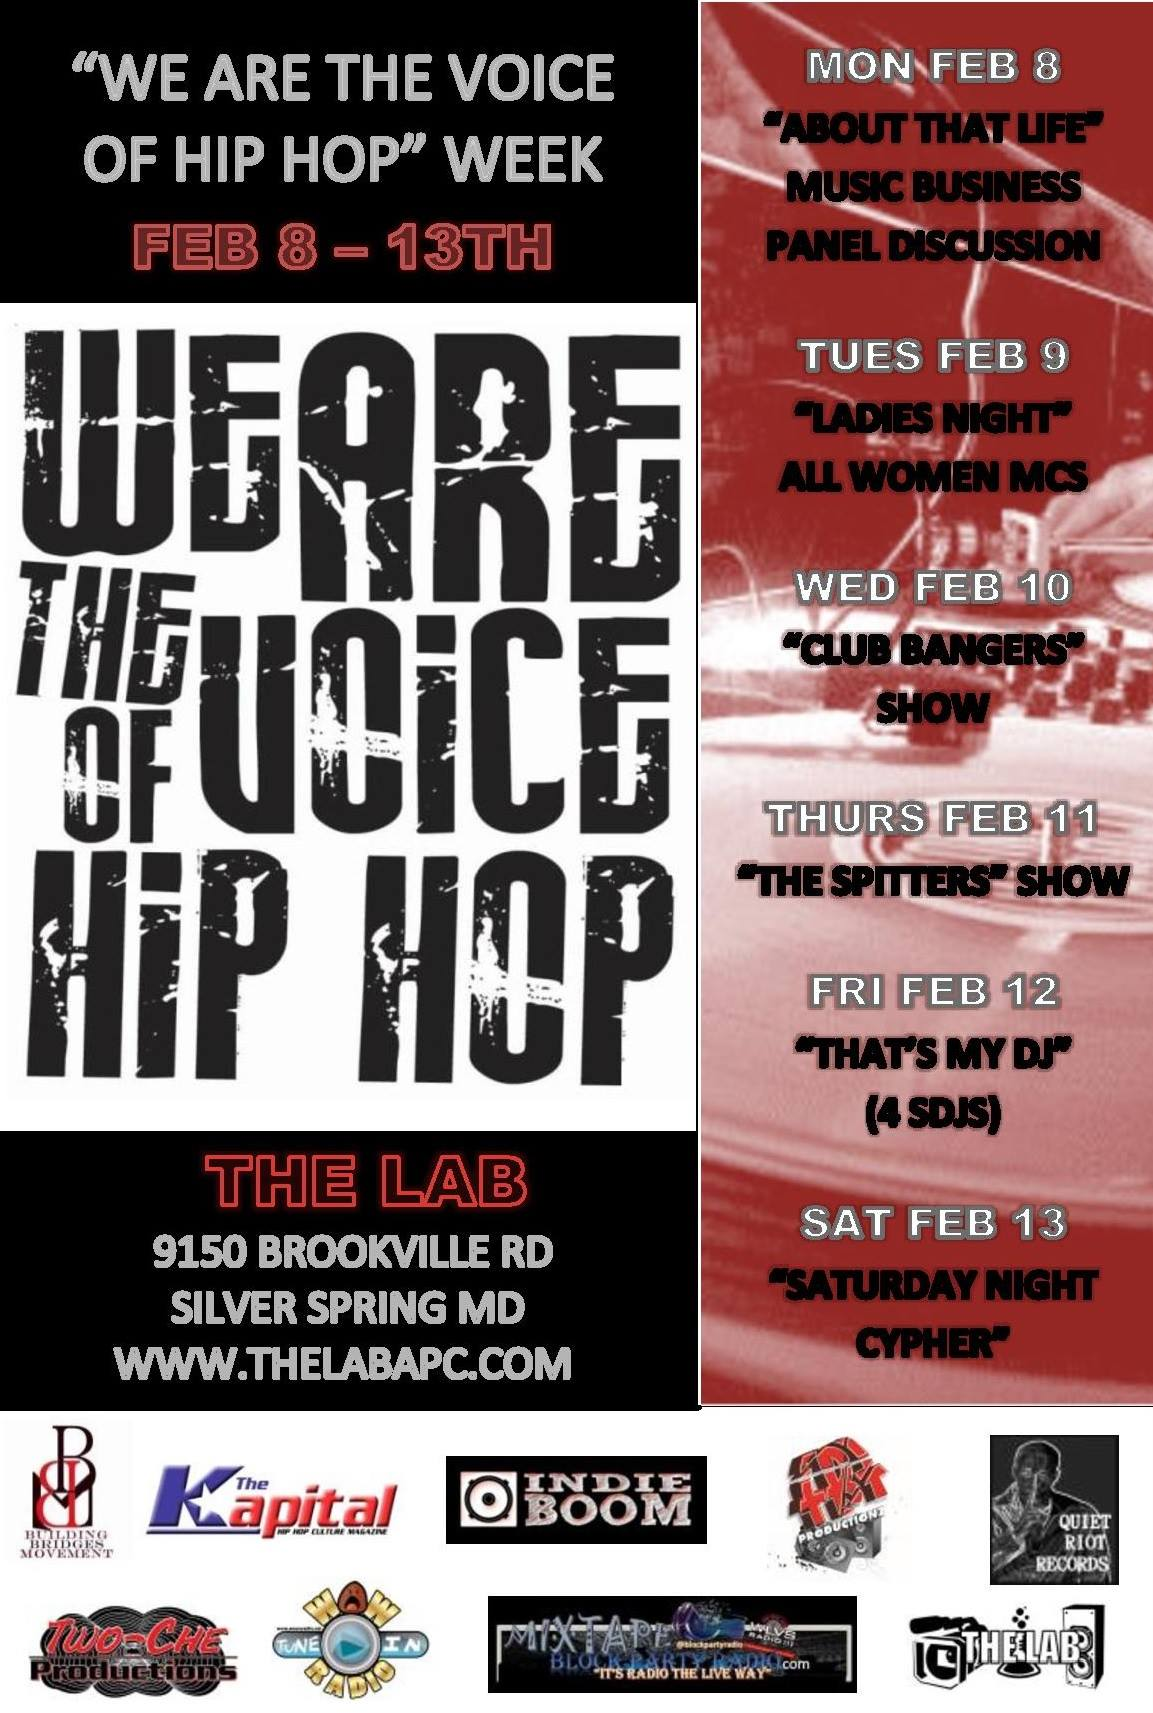 WE ARE THE VOICE OF HIP HOP WEEK